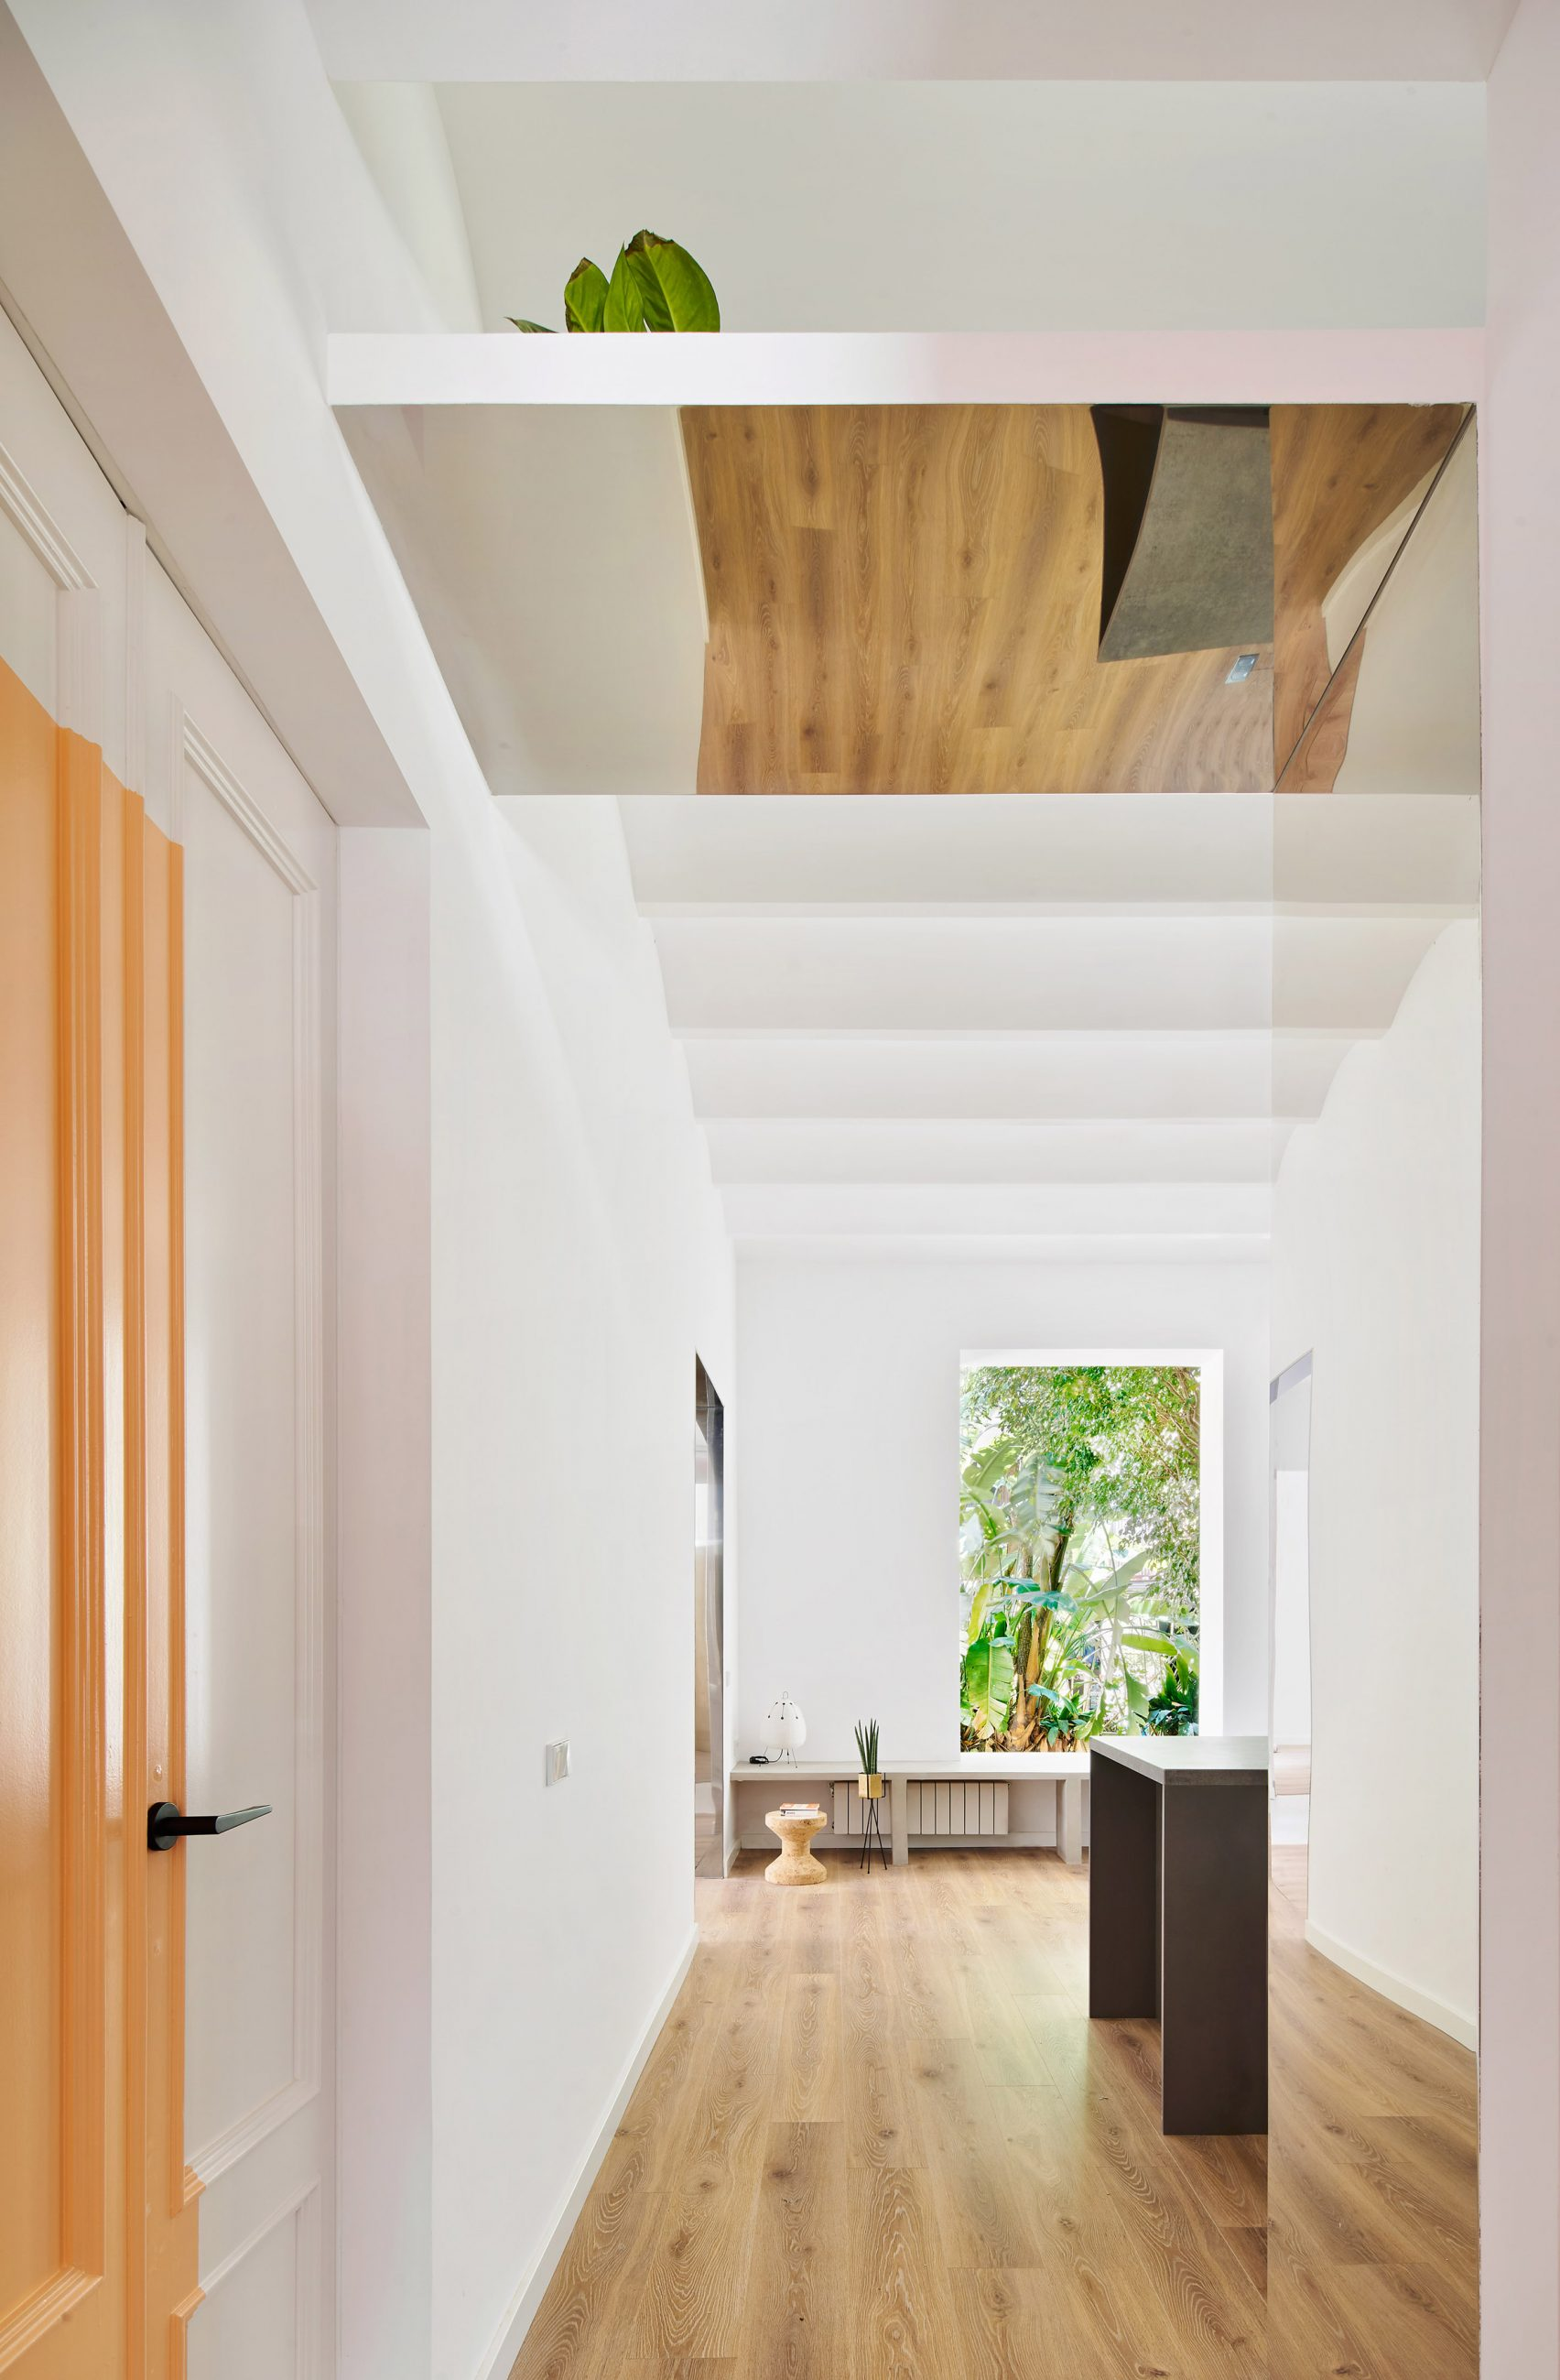 The apartment feels spacious, airy and bright thanks to large windows in each room